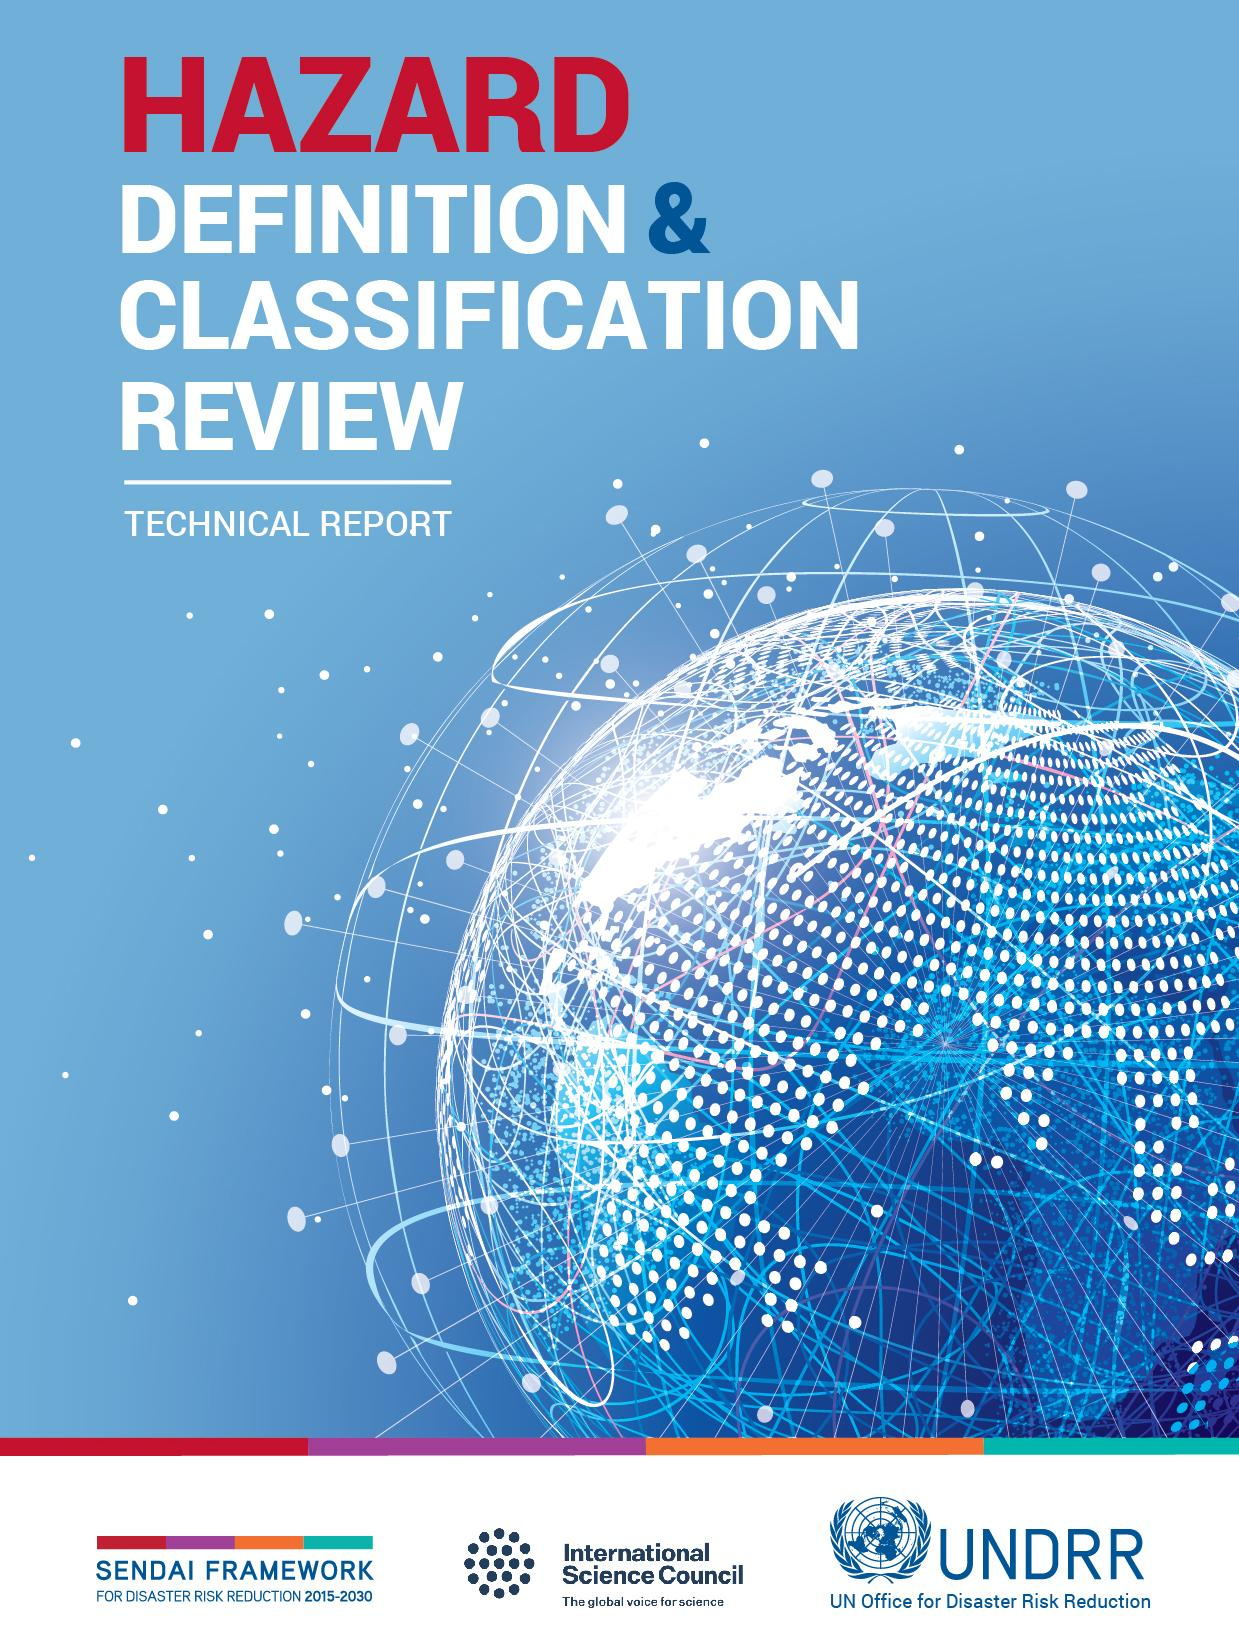 Cover of the Hazard Definition and Classification Review technical report